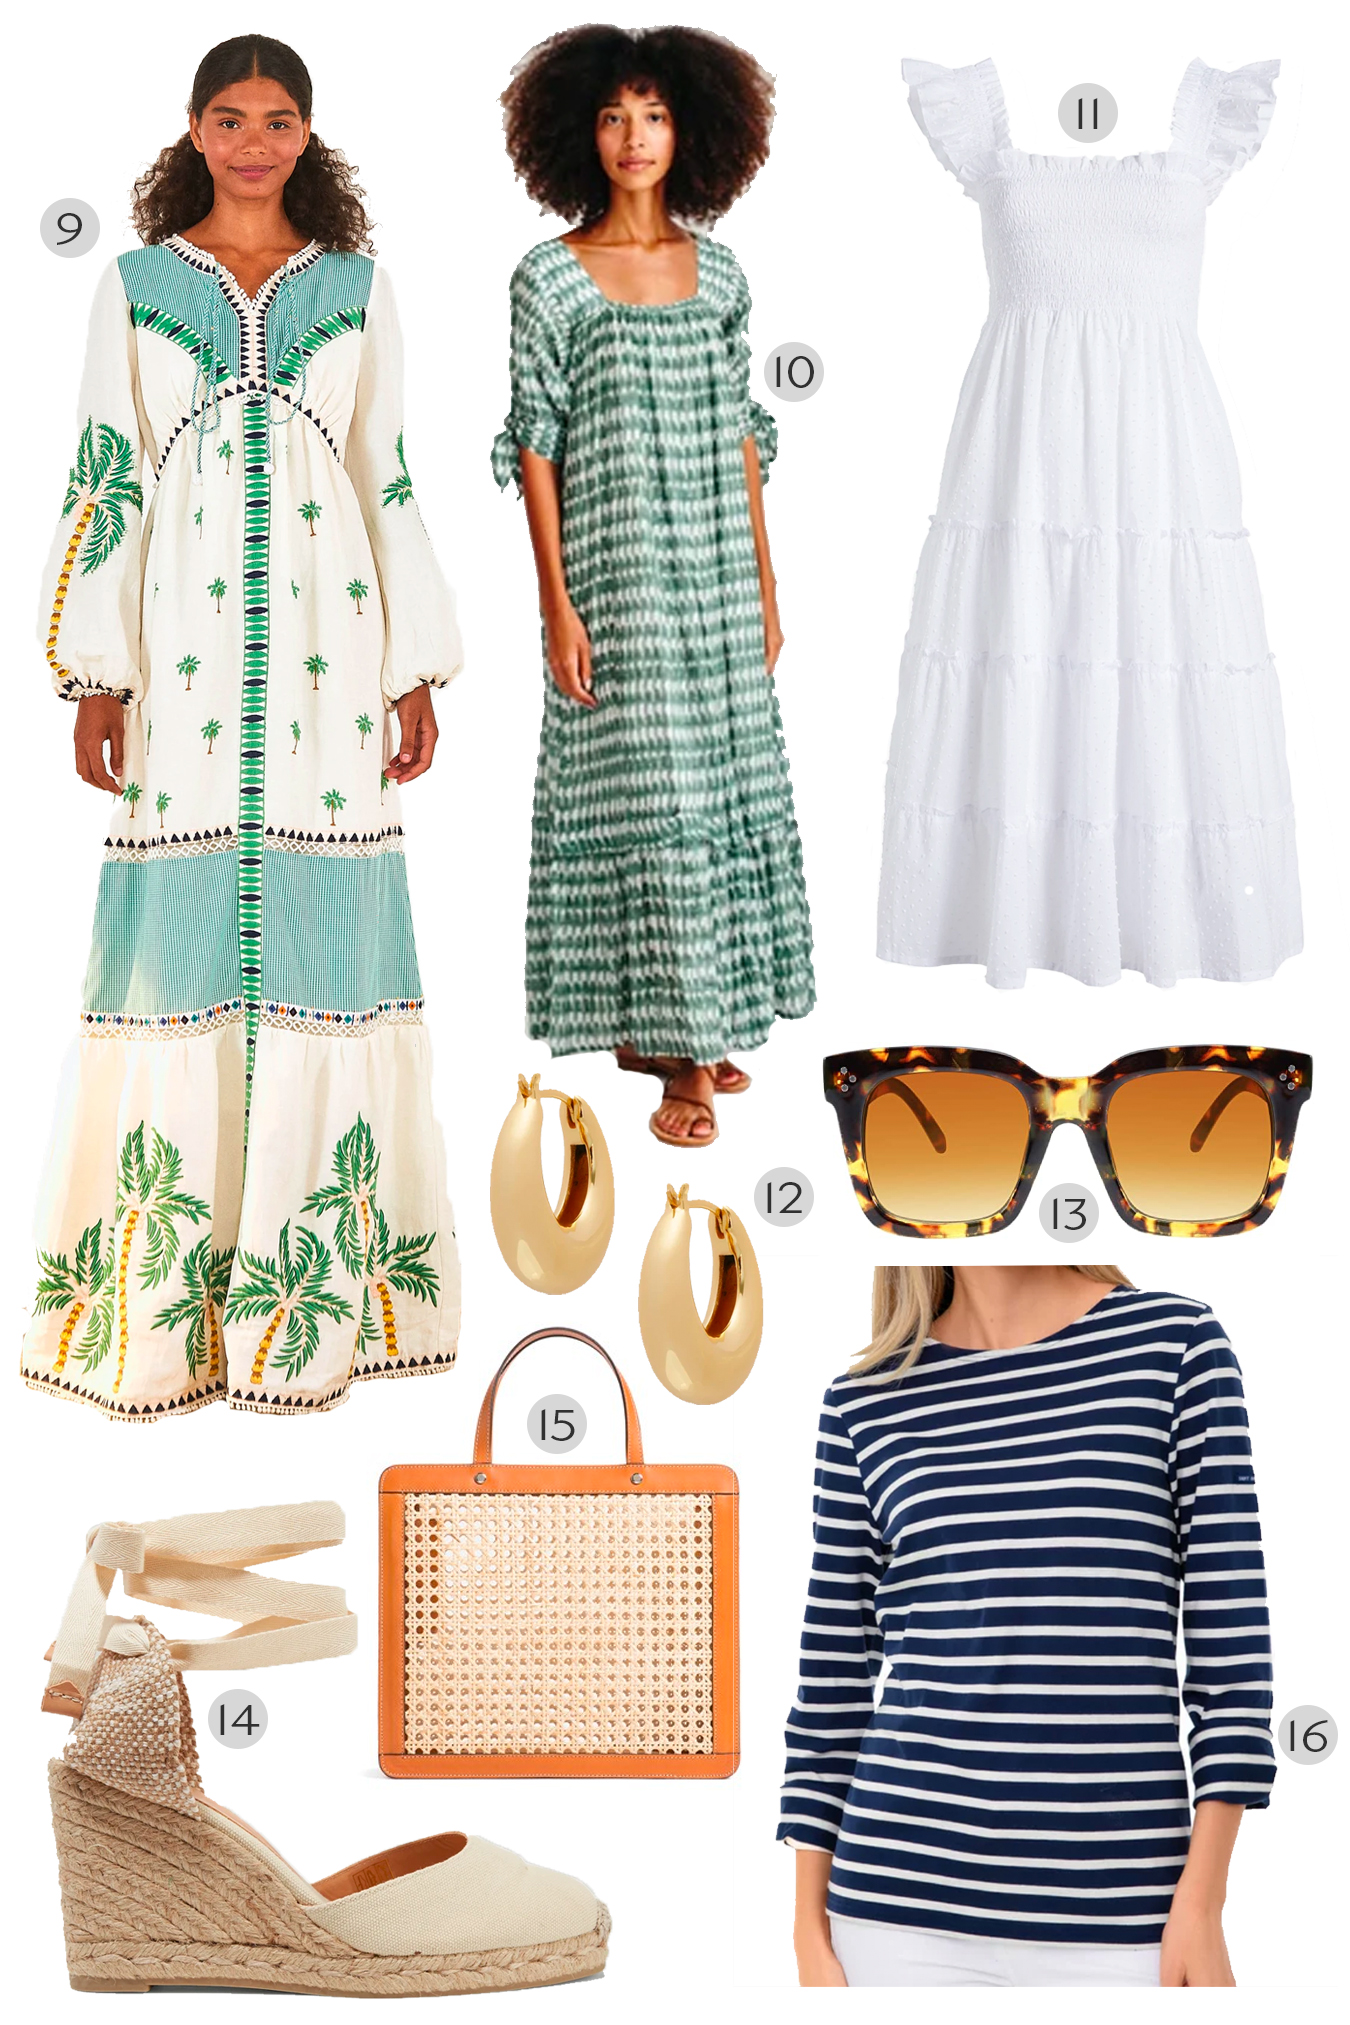 Outfits I Wore in Cape Cod